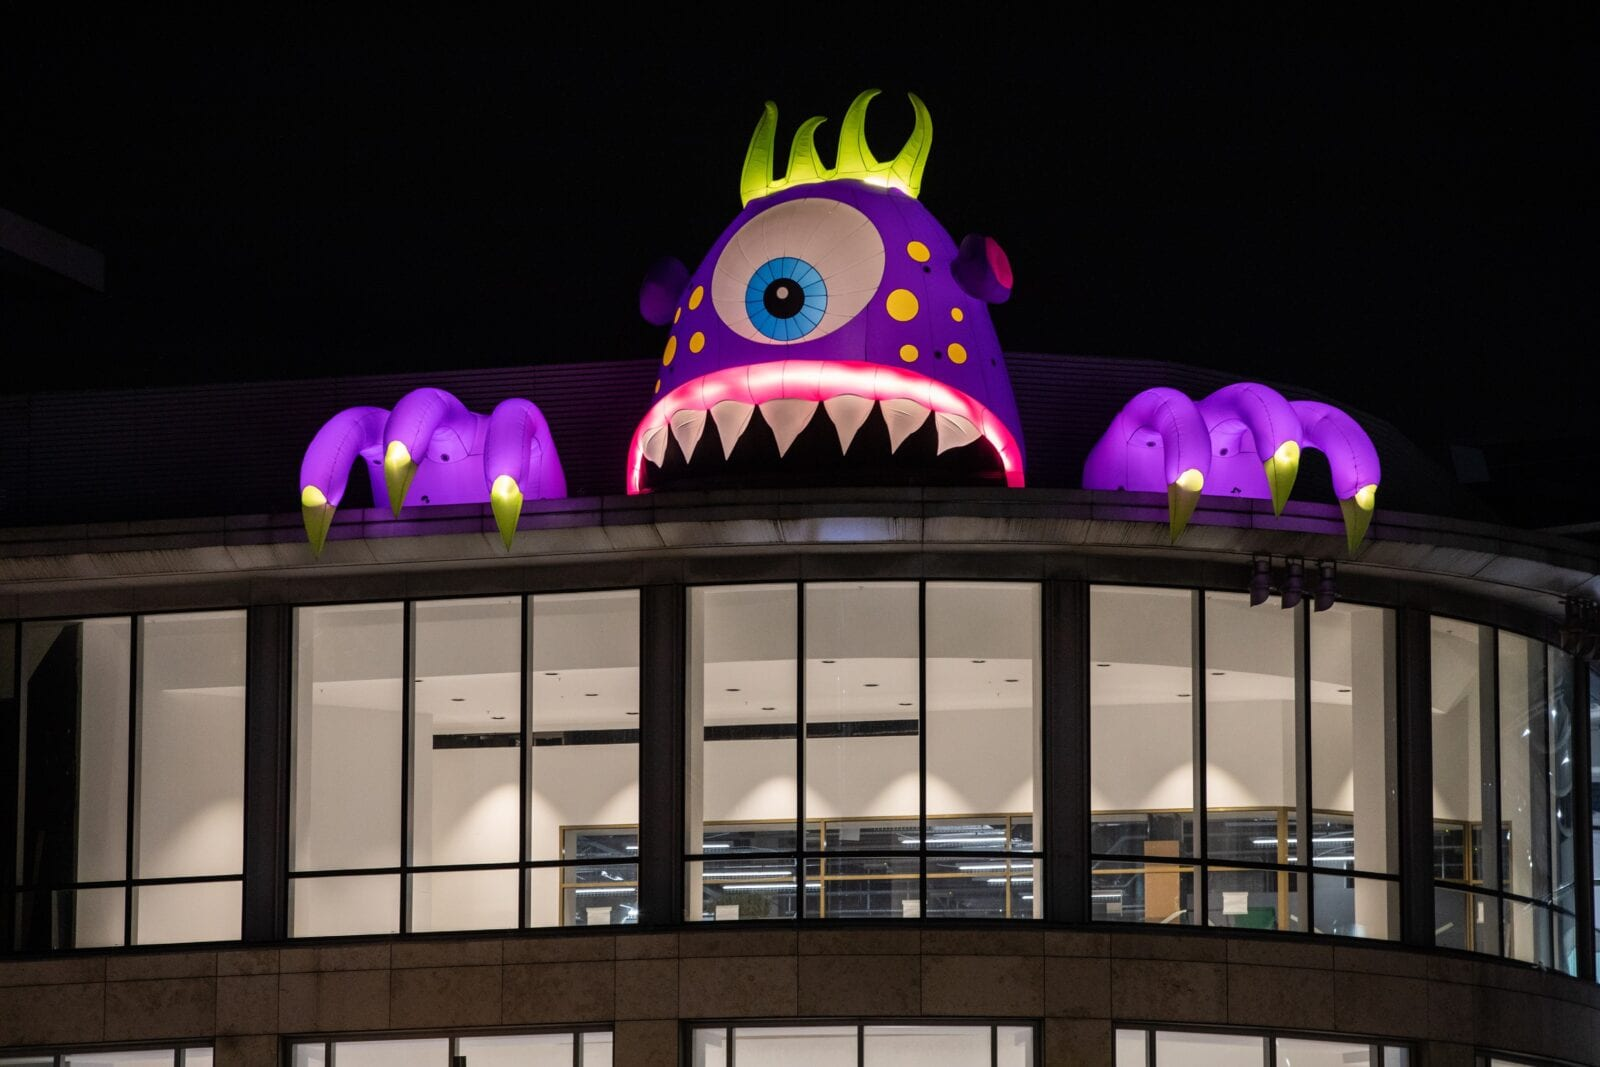 The MCR Monsters are returning to the city centre this Halloween, The Manc